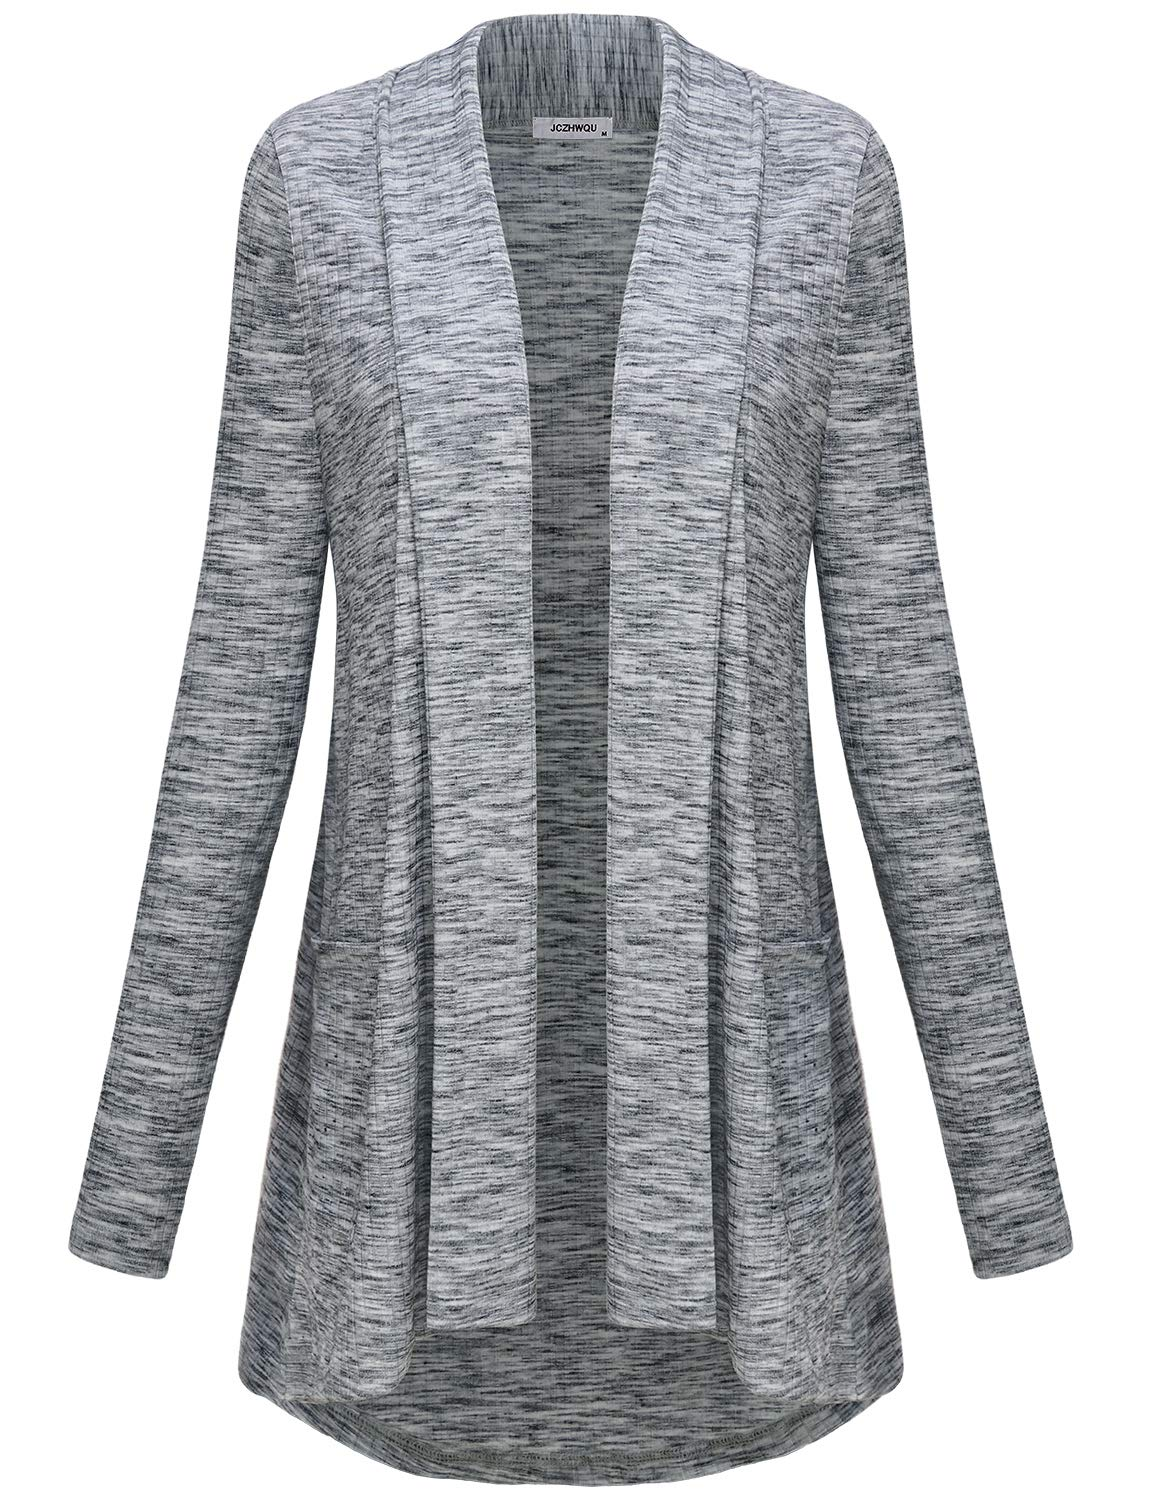 JCZHWQU Fall Tops for Women, Woman Long Sleeve Open Front Hi Low Comfy Stretchy Draped Light Knitted Cardigan Tunic Sweater Legging Shirts Wrinkle Free Travel Clothes Grey L